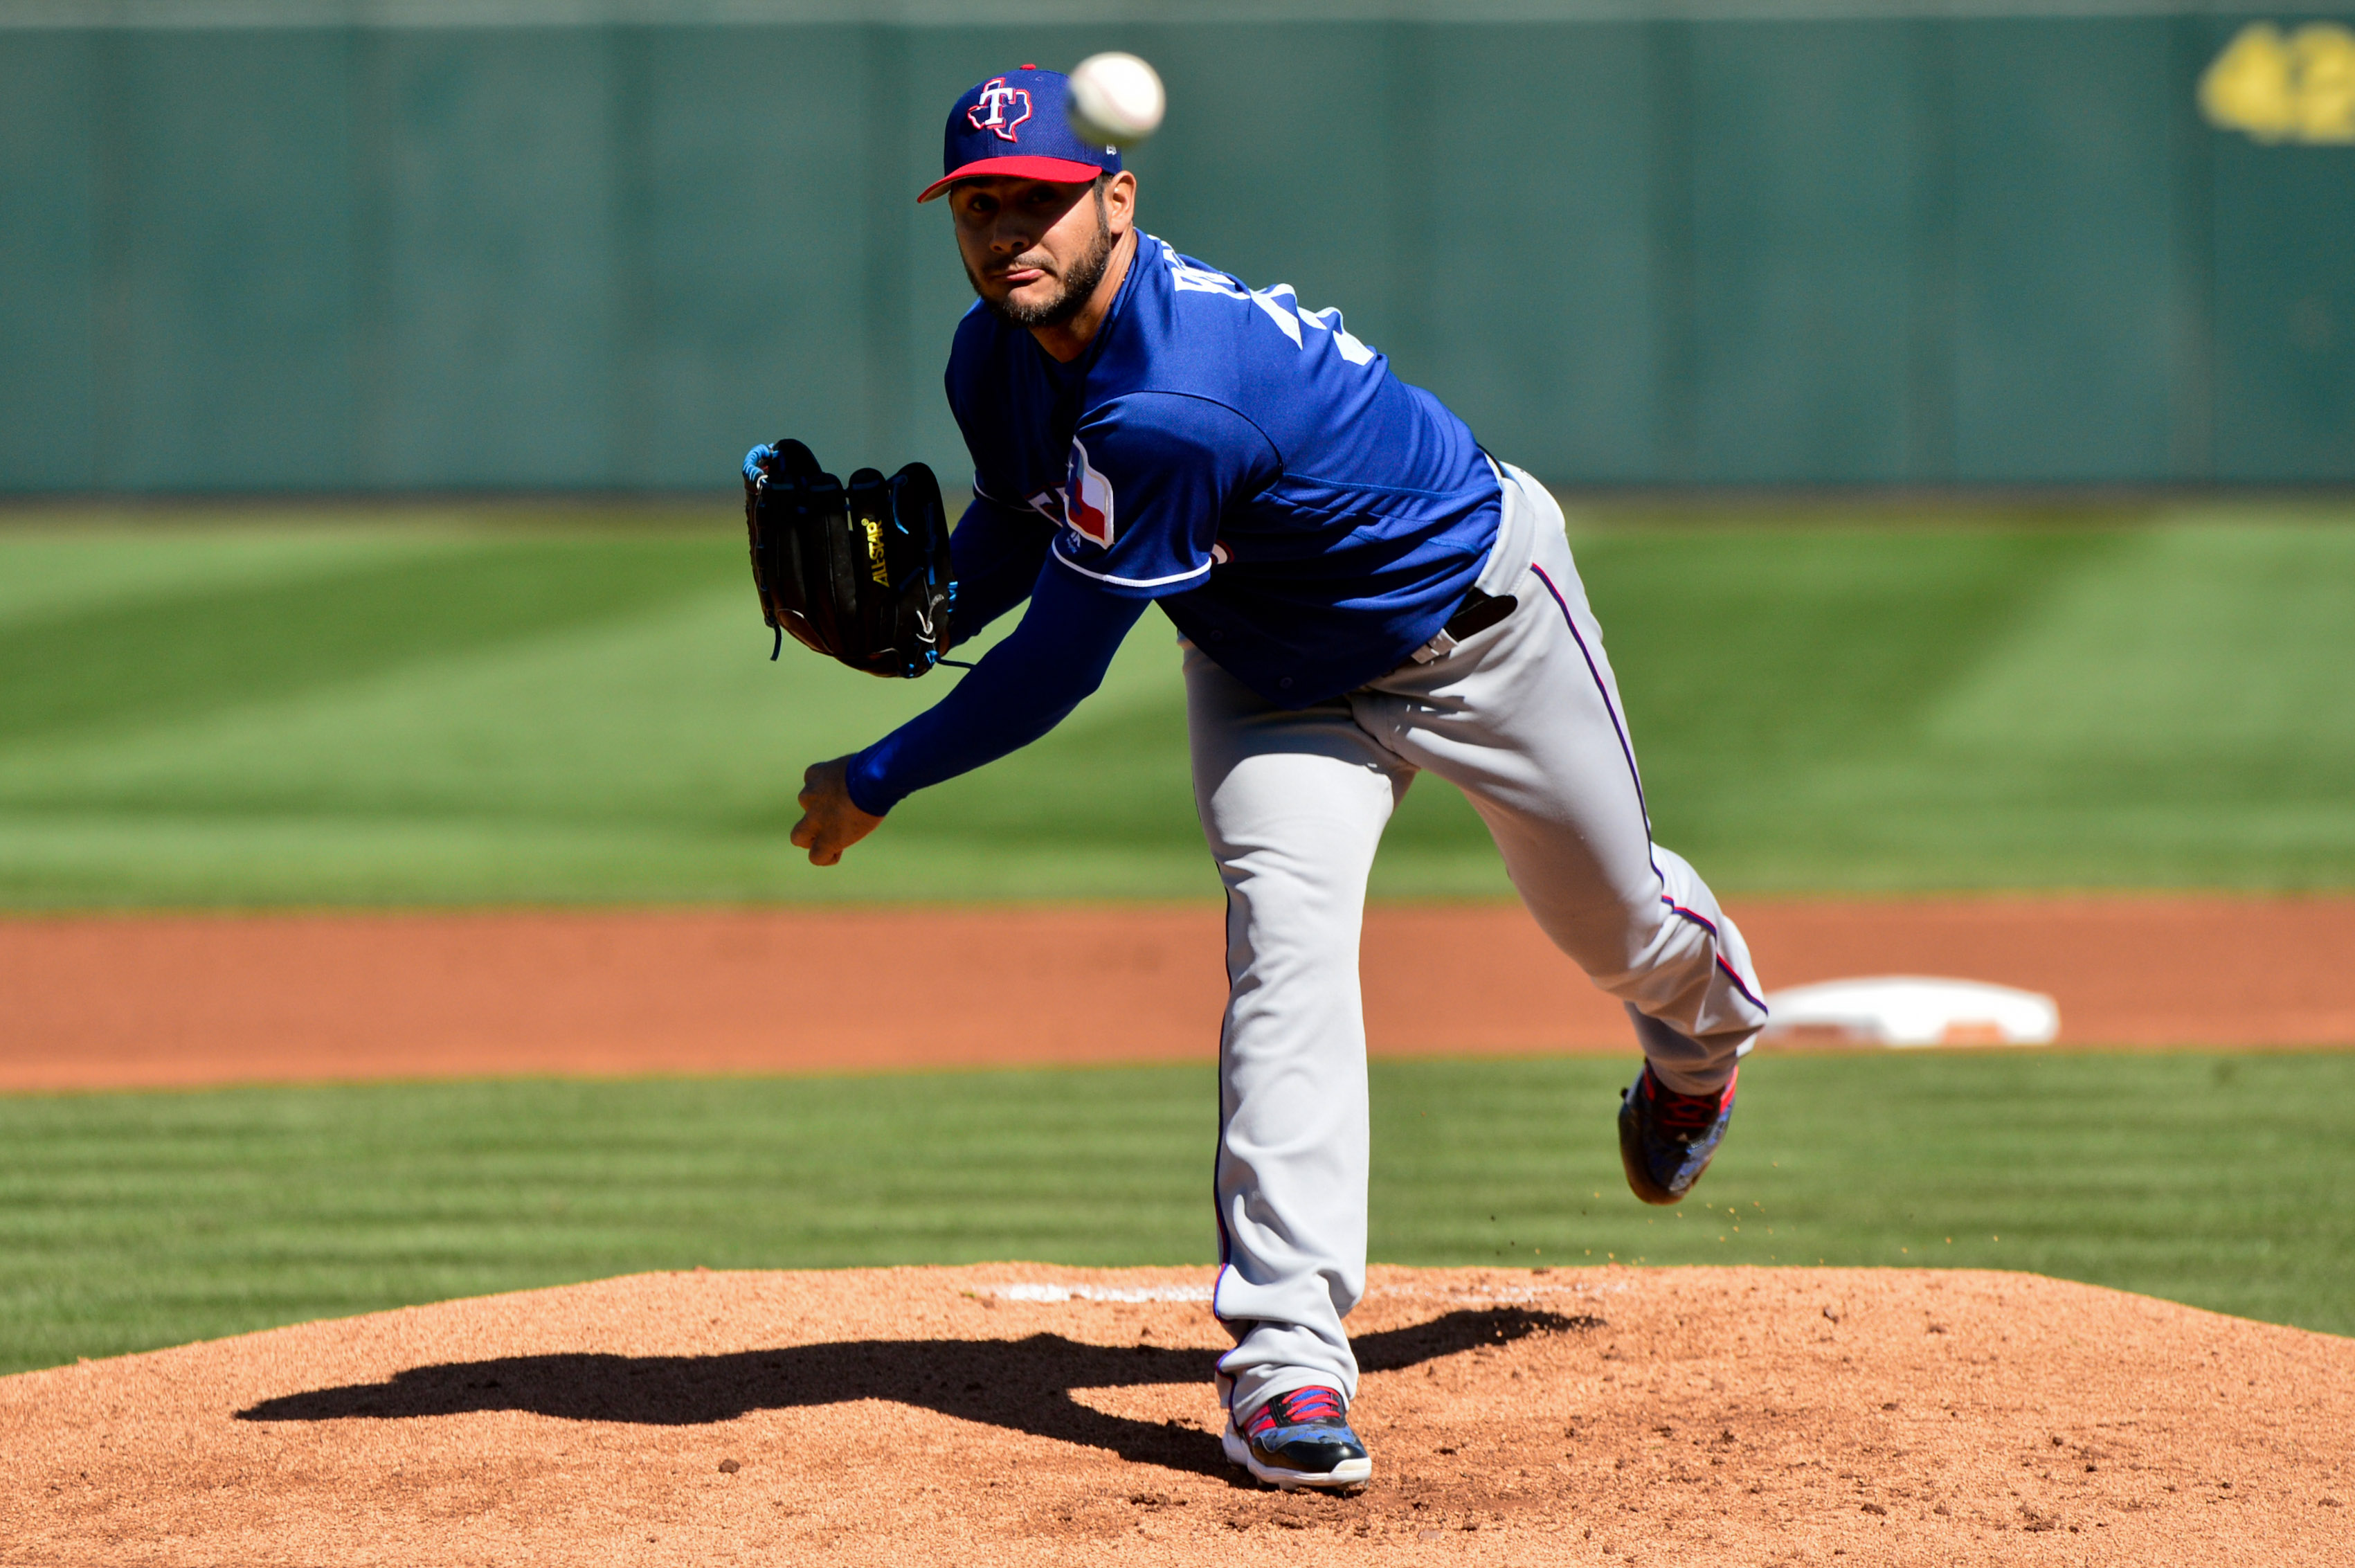 9910084-mlb-spring-training-texas-rangers-at-los-angeles-angels